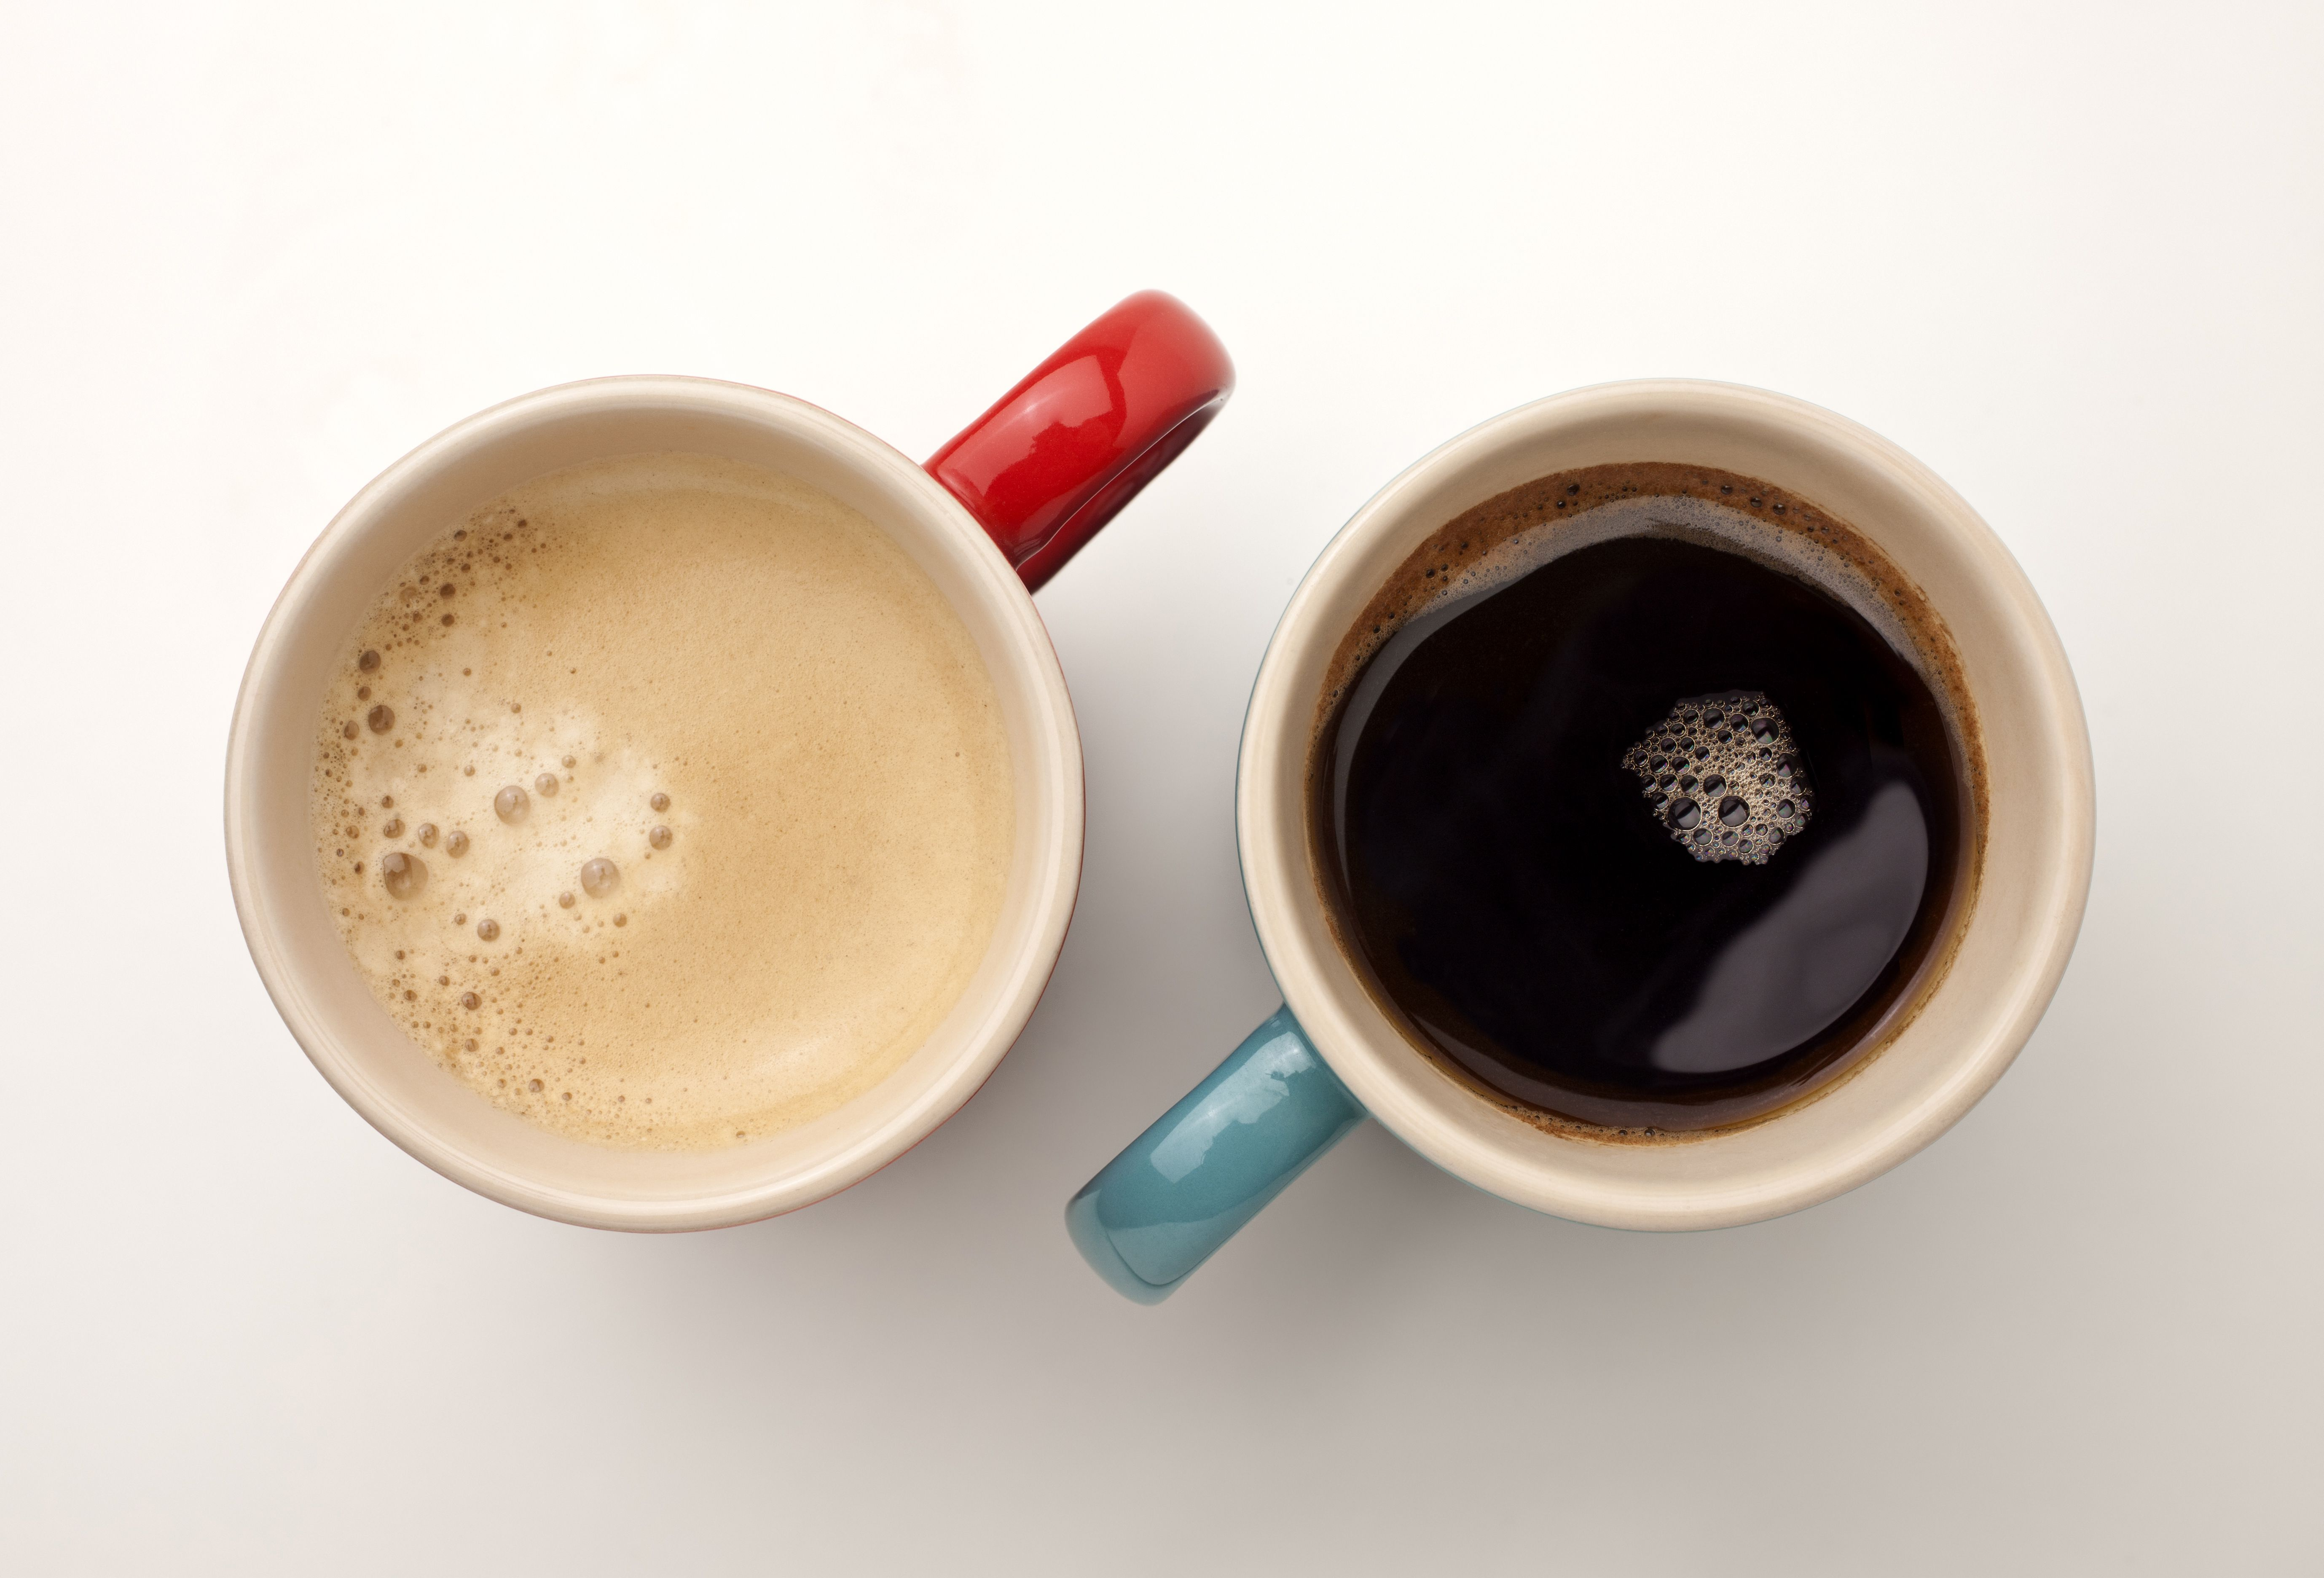 Black and white cups of coffee